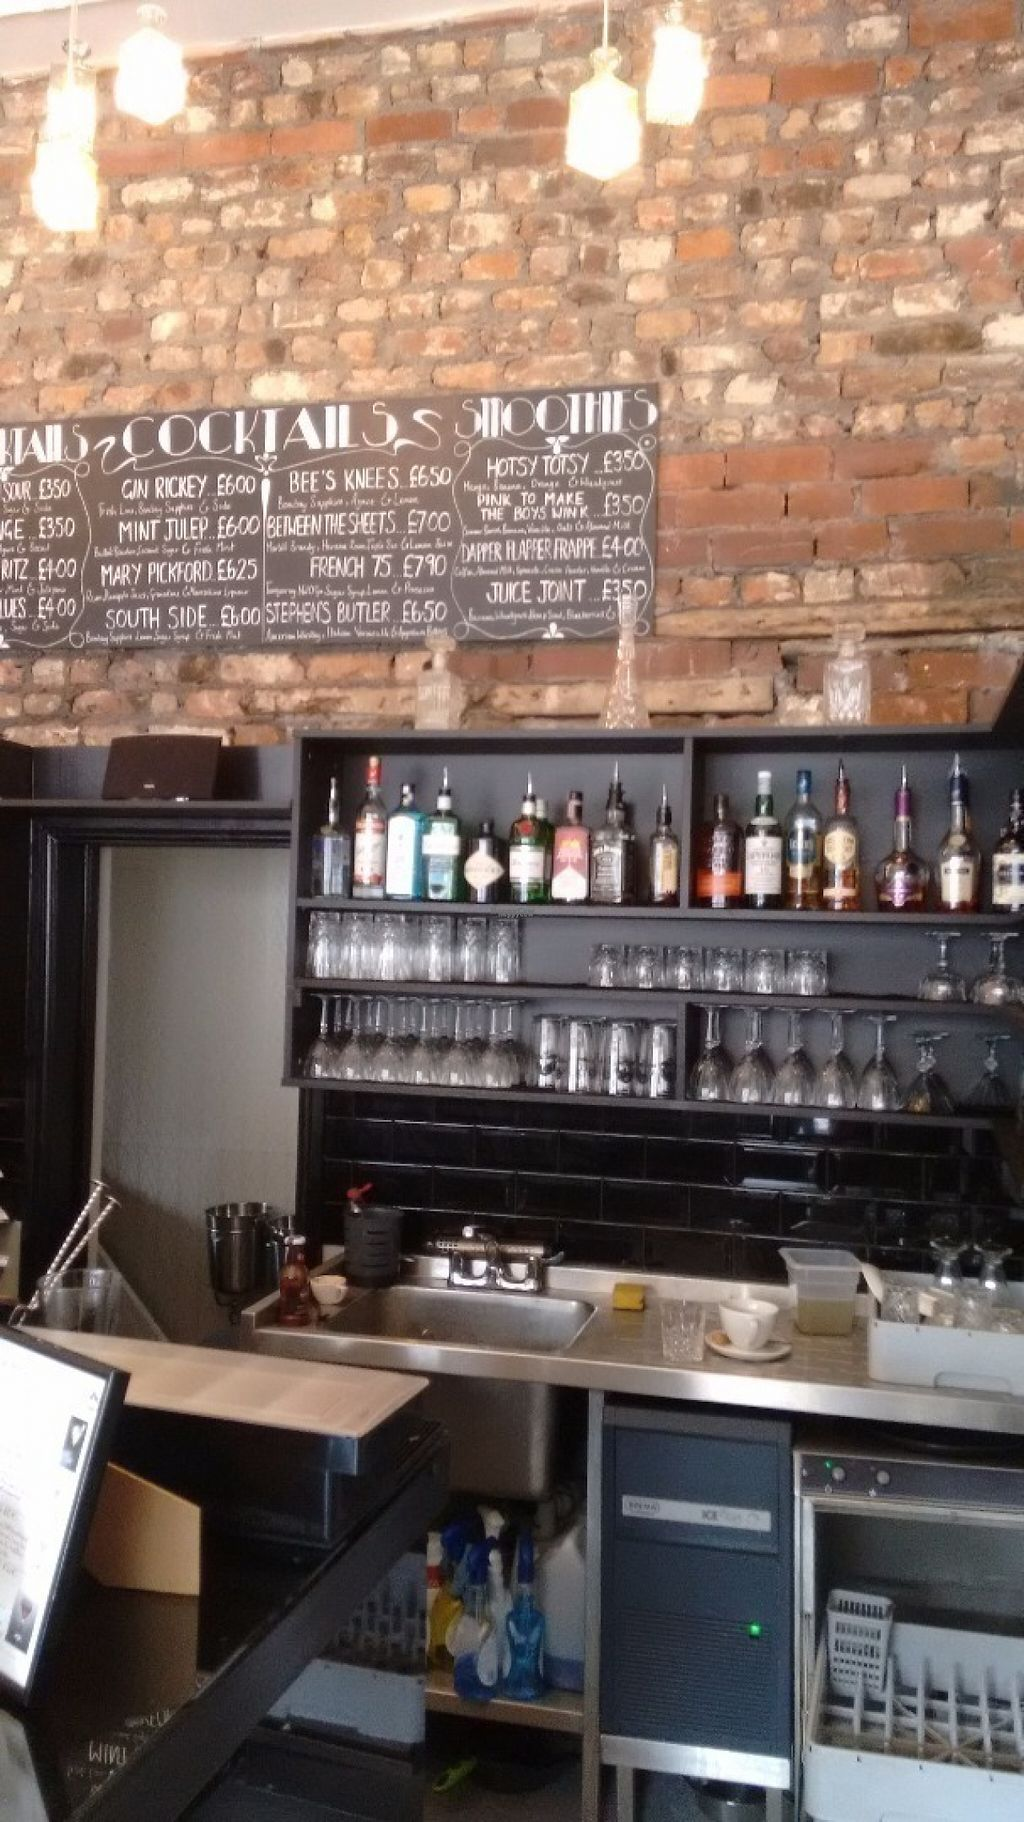 """Photo of CLOSED: Lolo's Vegan Restaurant & Bar  by <a href=""""/members/profile/craigmc"""">craigmc</a> <br/>Bar <br/> August 1, 2016  - <a href='/contact/abuse/image/66308/164140'>Report</a>"""